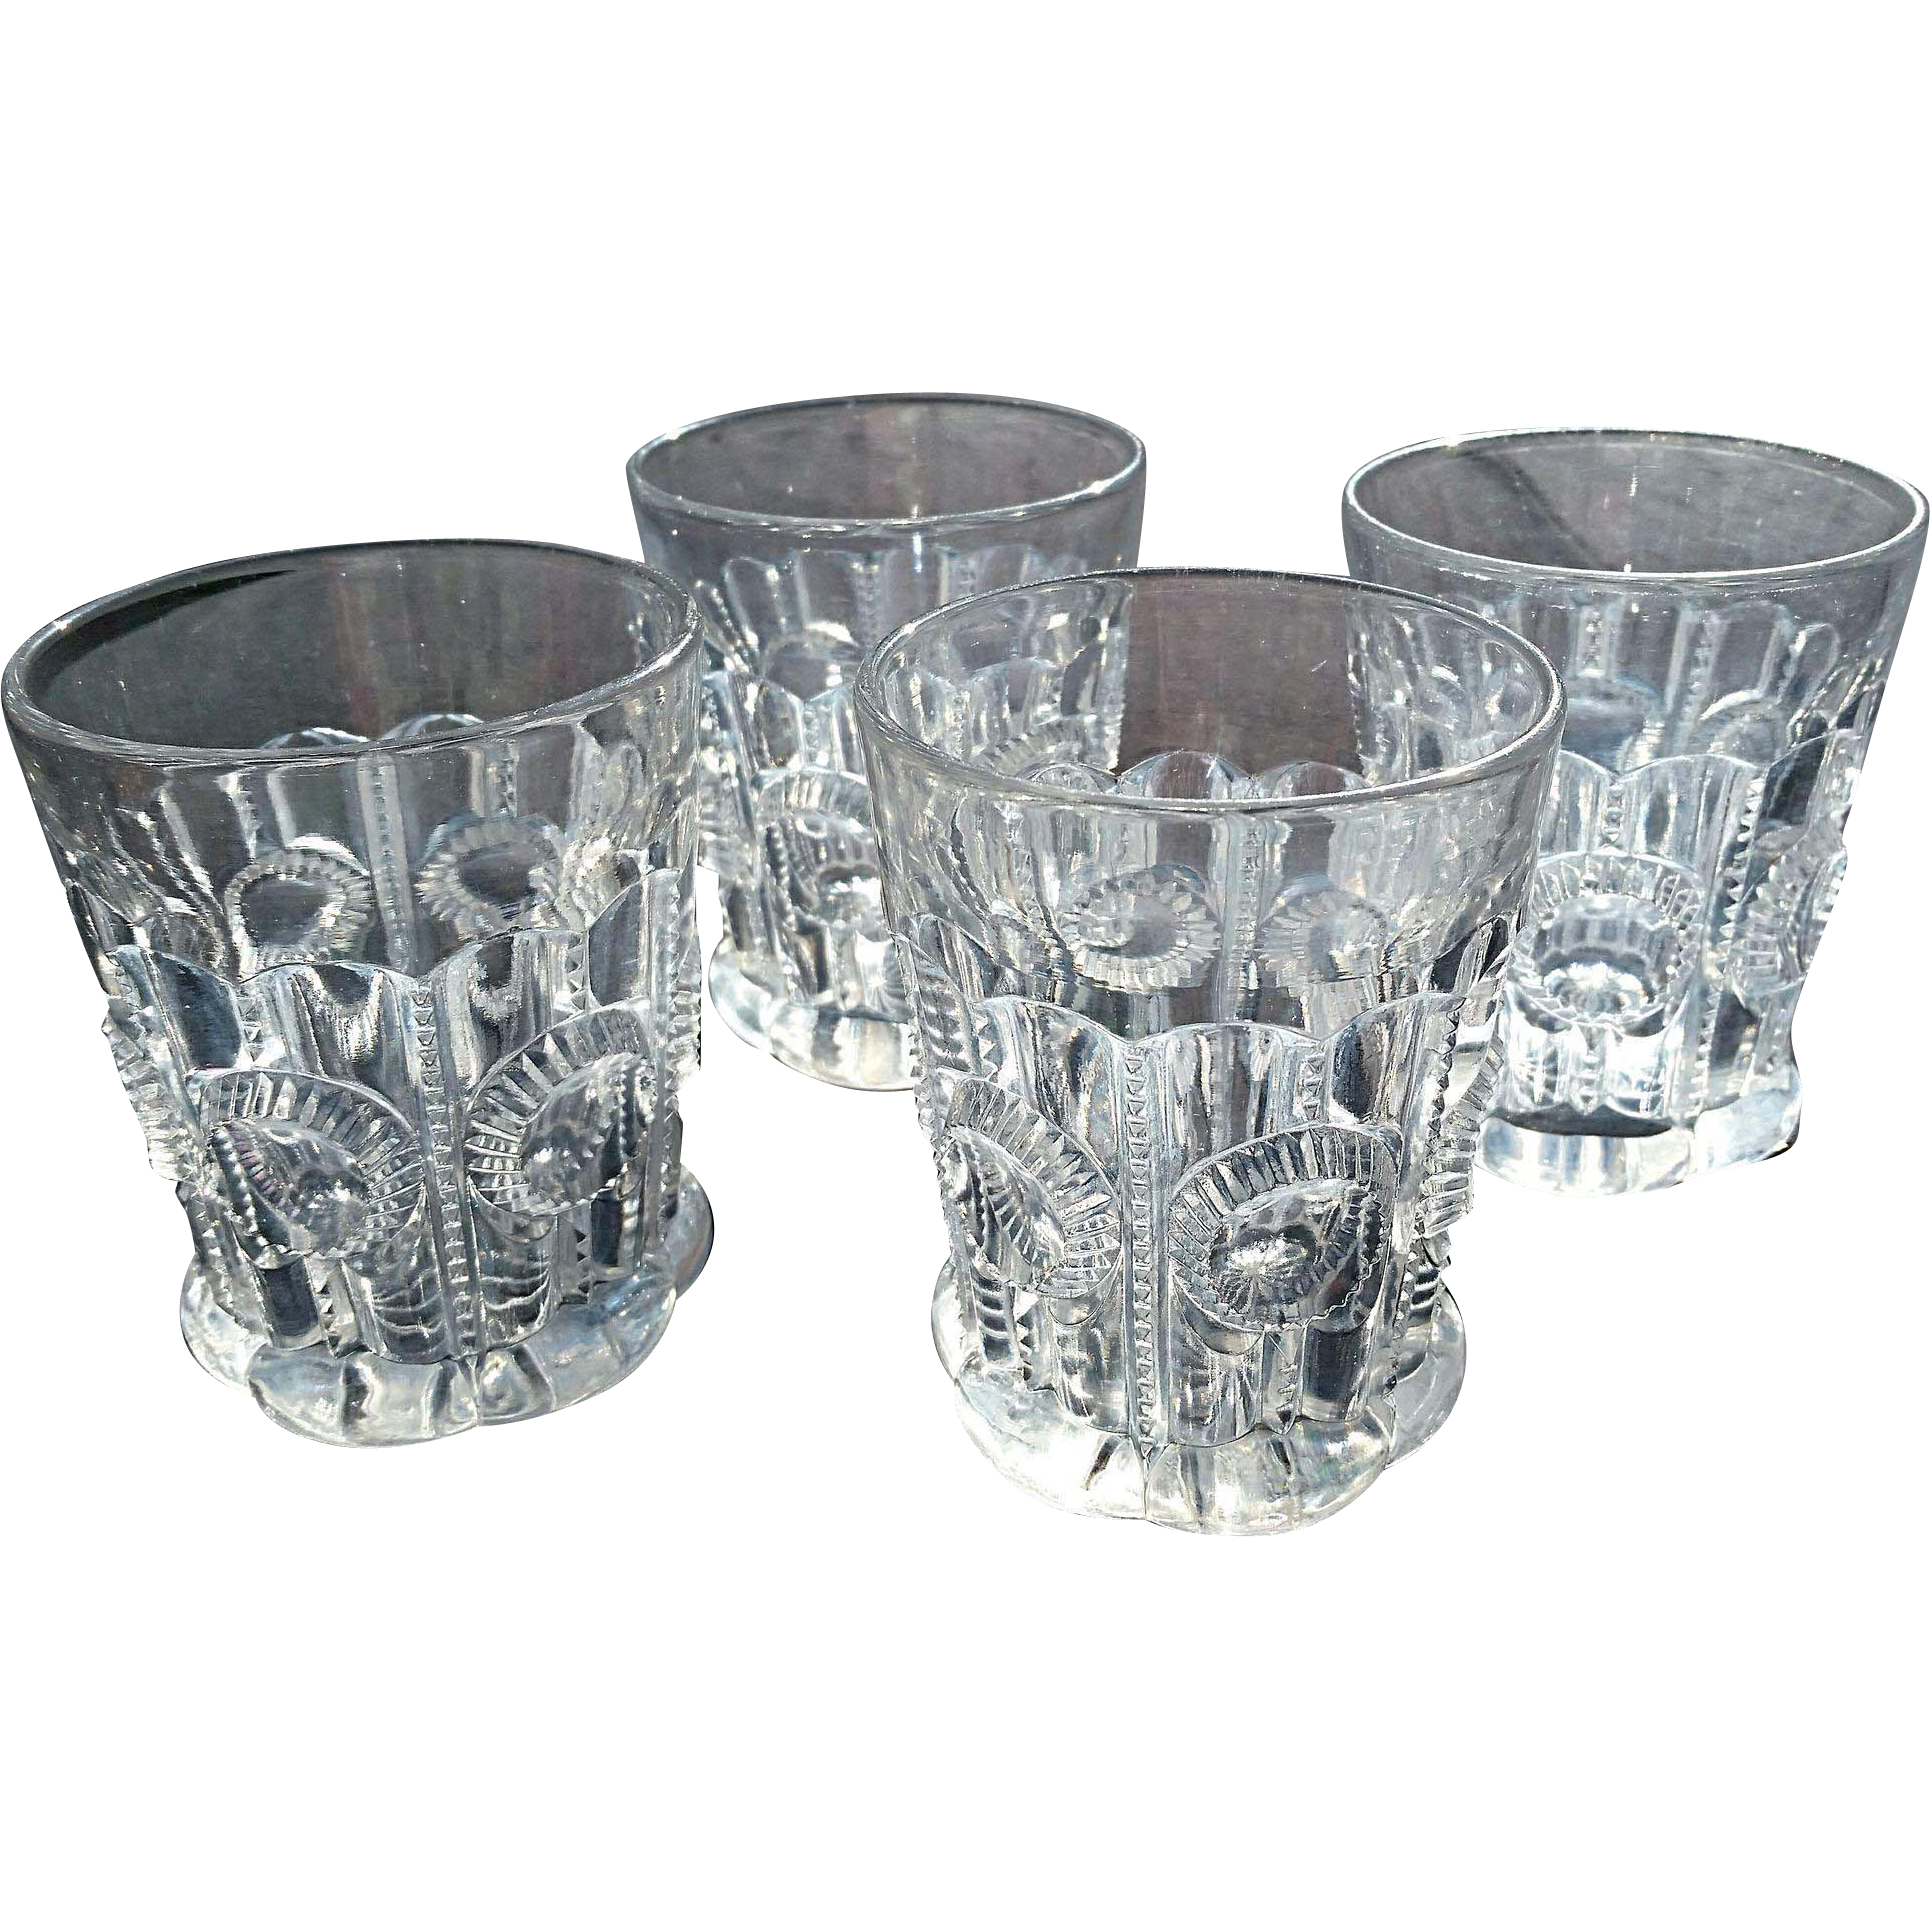 'Co-ops Columbia' set of 4 pattern glass tumblers, Co-operative Flint Glass